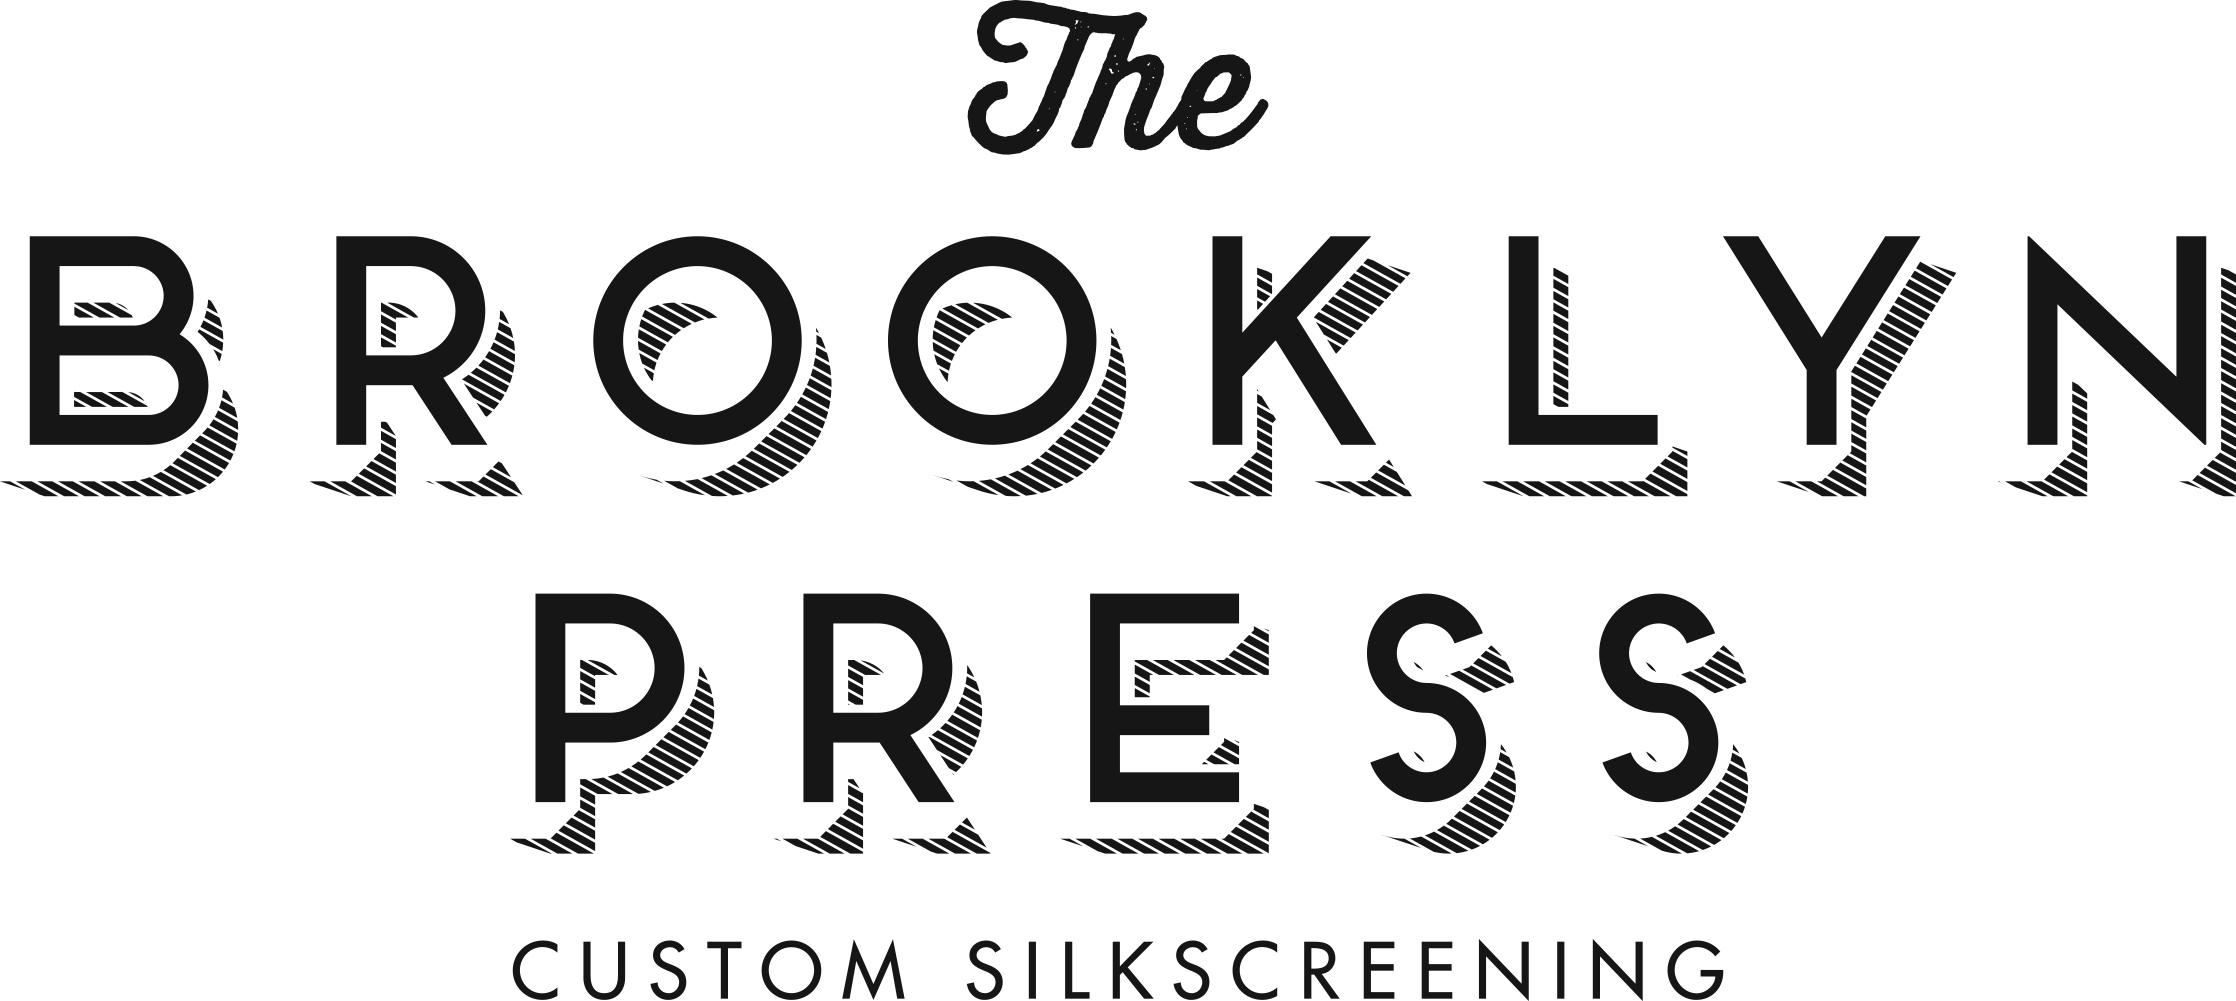 The Brooklyn Press Logo.jpg